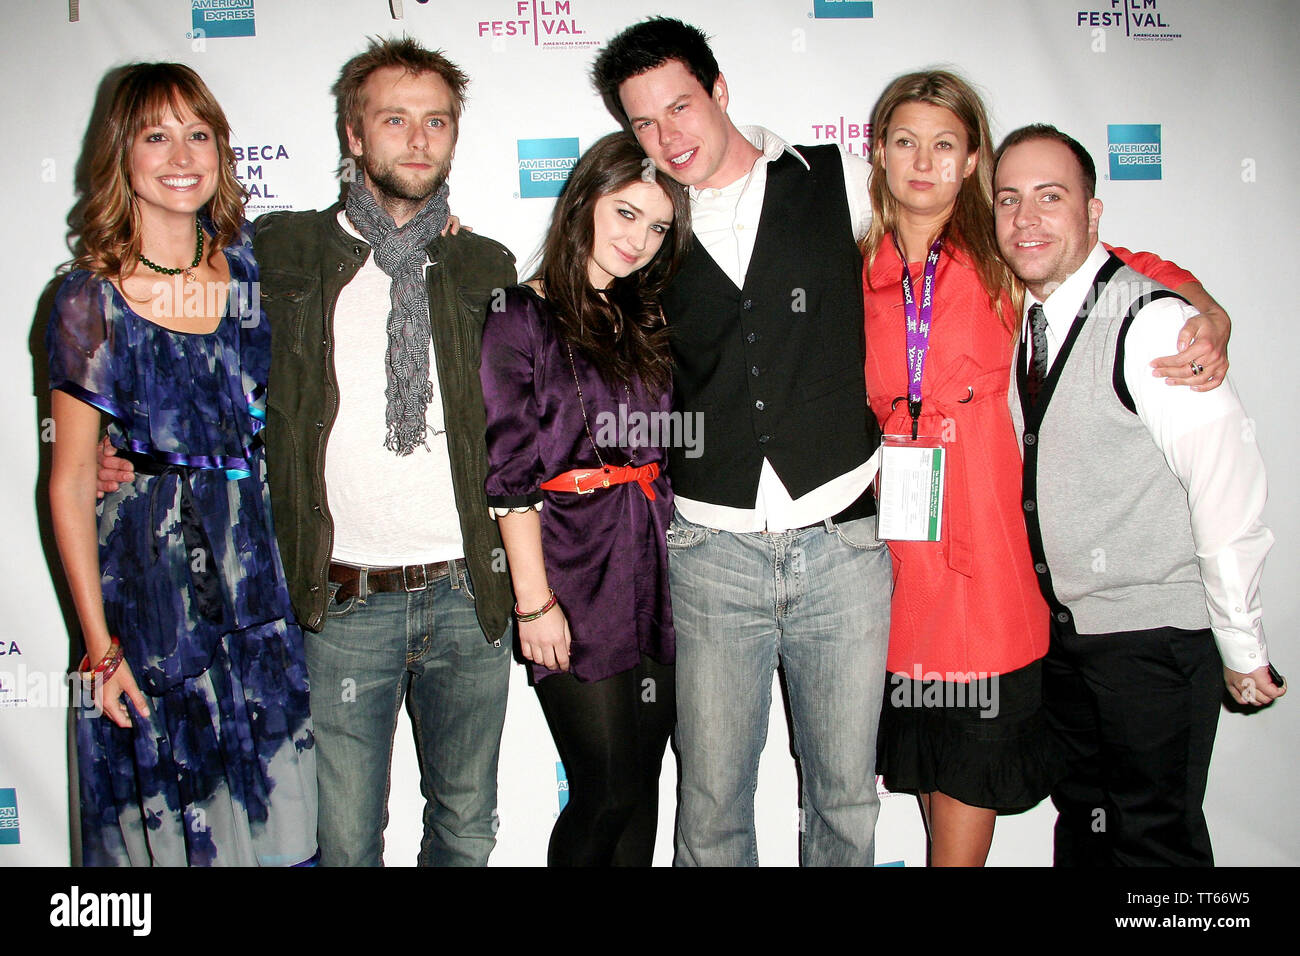 New York, USA. 26 April, 2008. Alexie Gilmore, Joe Anderson, Eve Hewson, David P. Emrich, Erica Dunton, guest at the Premiere Of 'The 27 Club' At The 2008 Tribeca Film Festival at AMC Theater. Credit: Steve Mack/Alamy - Stock Image